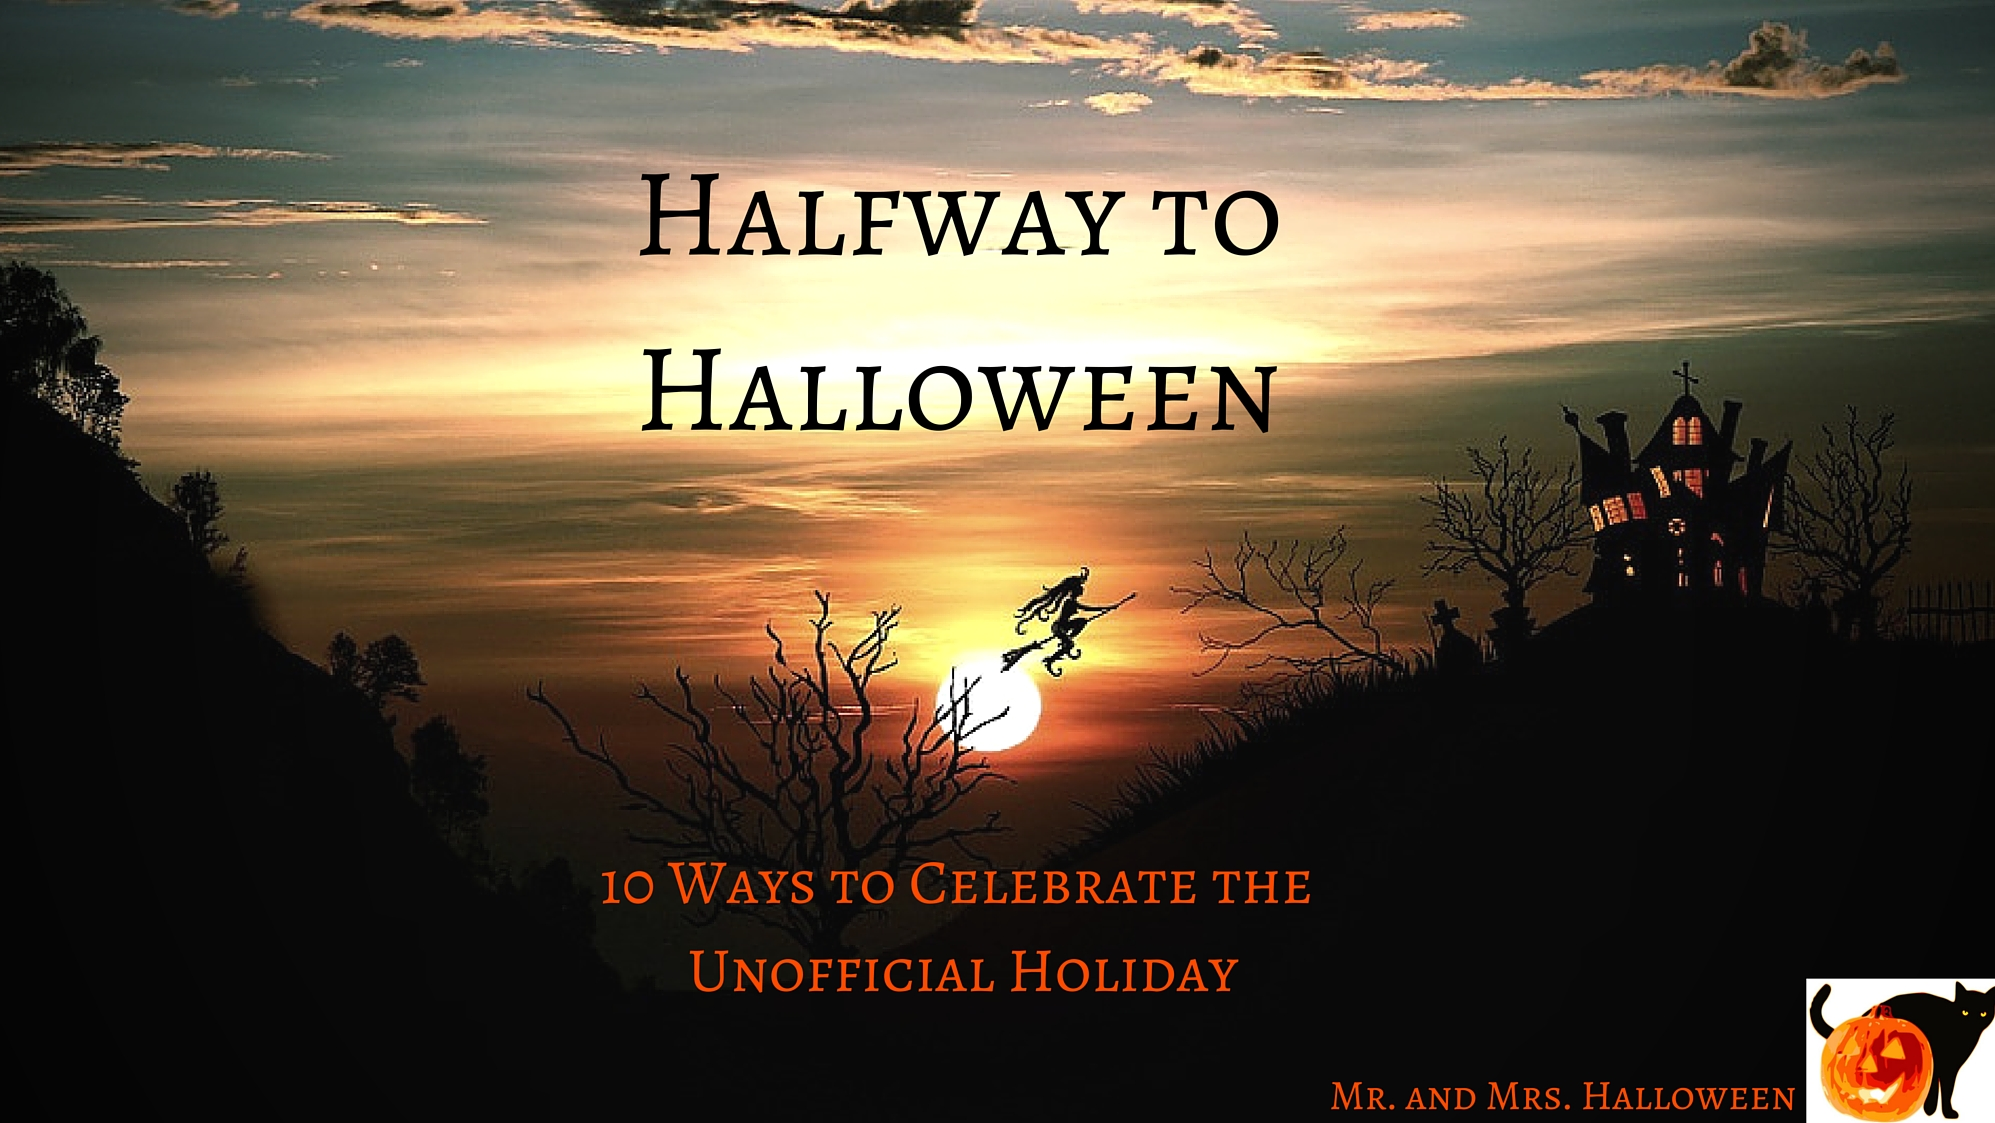 Halfway To Halloween 2020 Halfway to Halloween: 10 Ways to Celebrate the Unofficial Holiday